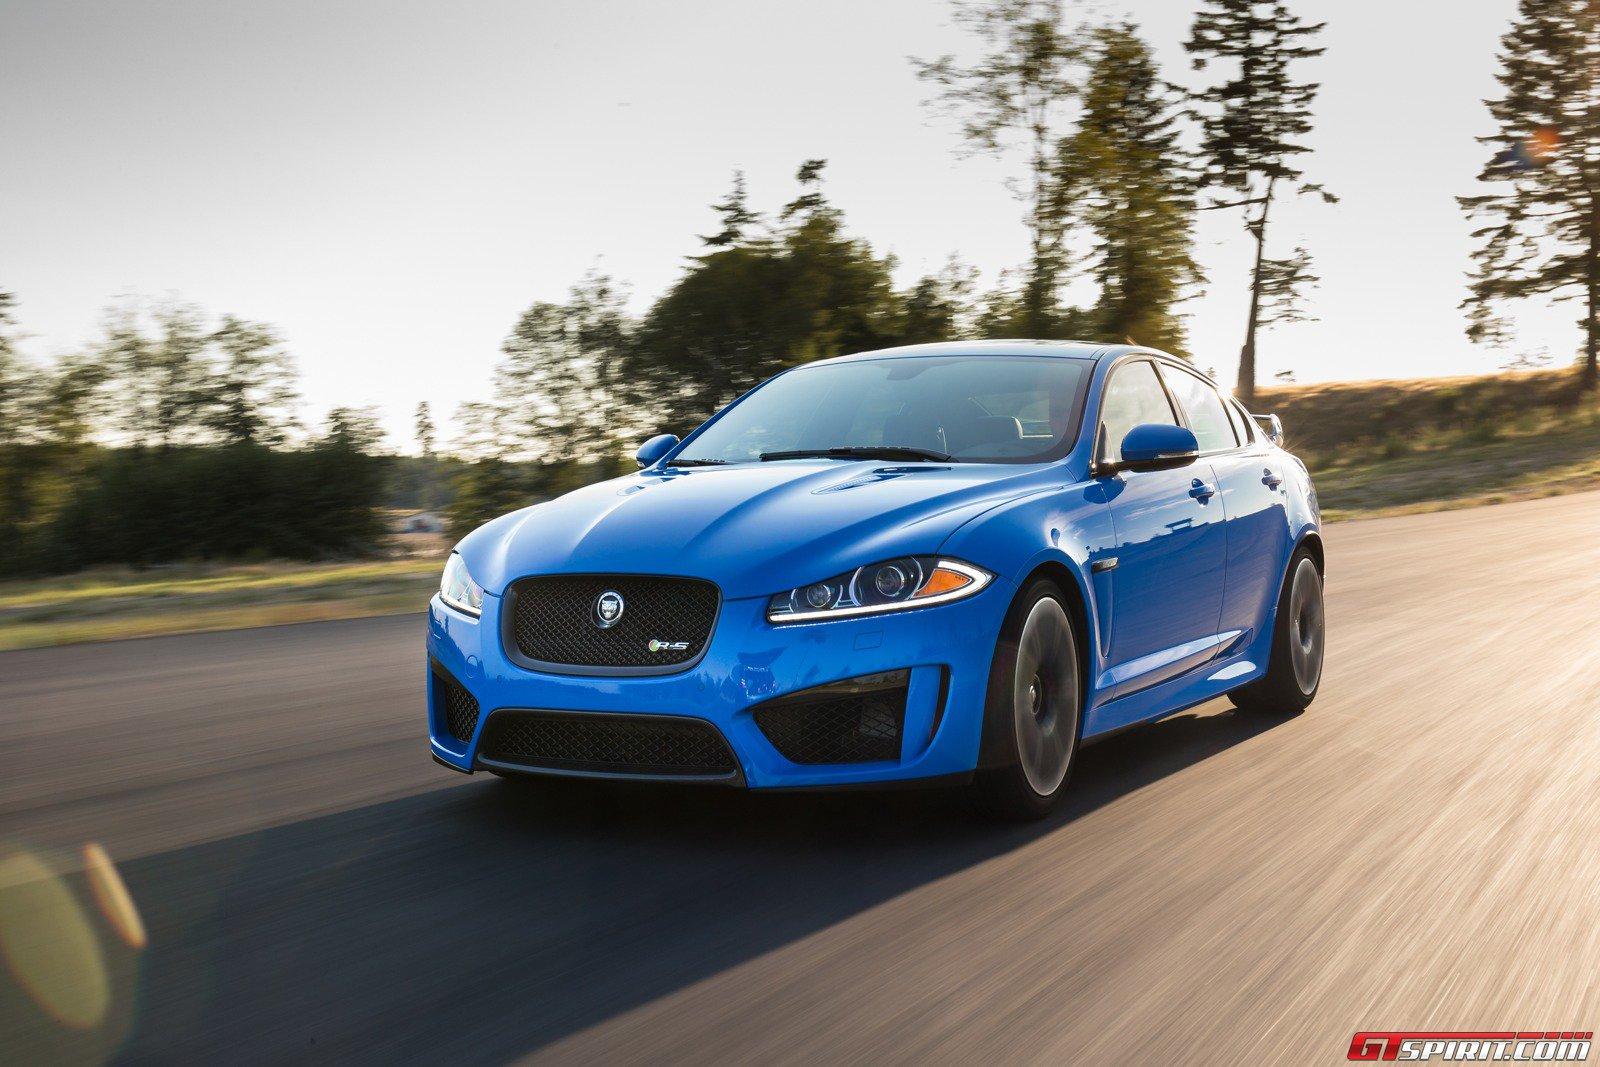 Charming 2015 Jaguar XF Range Expanded With New Prices